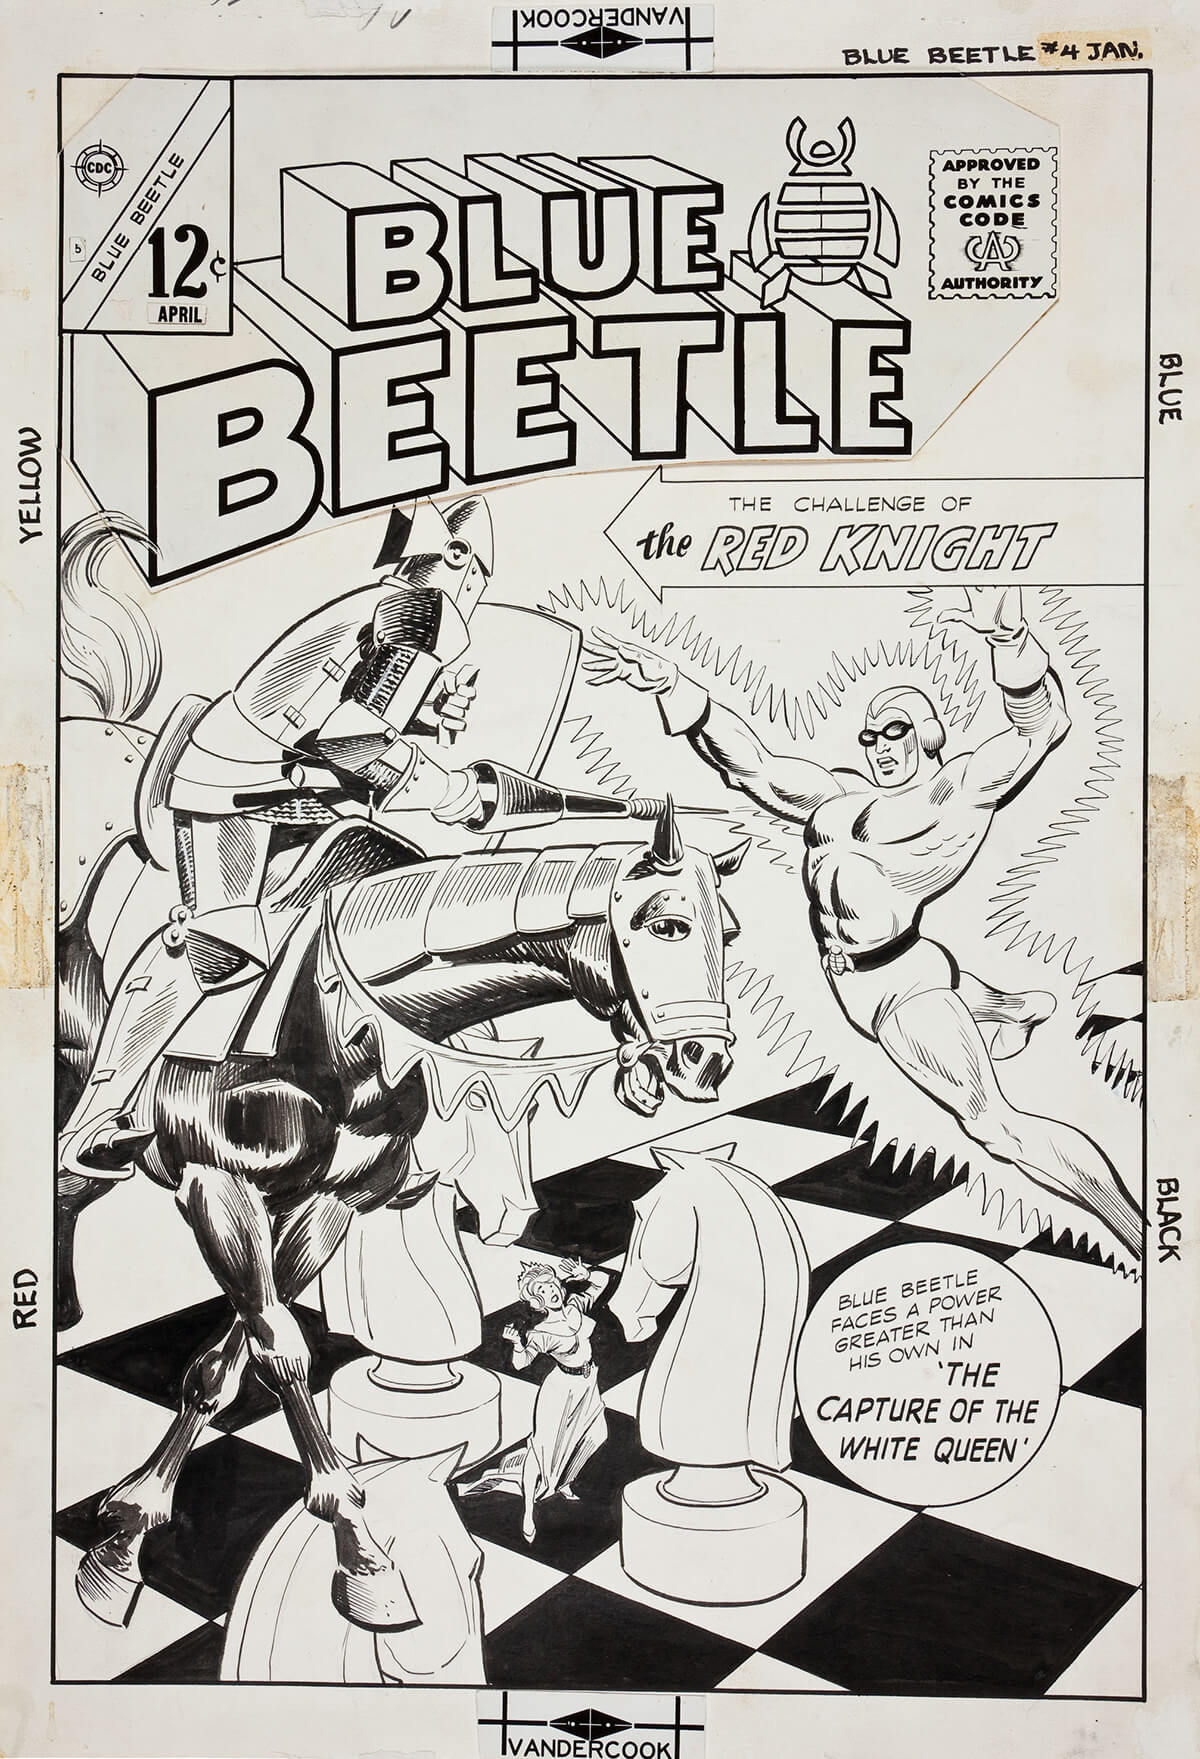 Blue Beetle 1964 5 cover by Bill Fraccio and Dick Giordano